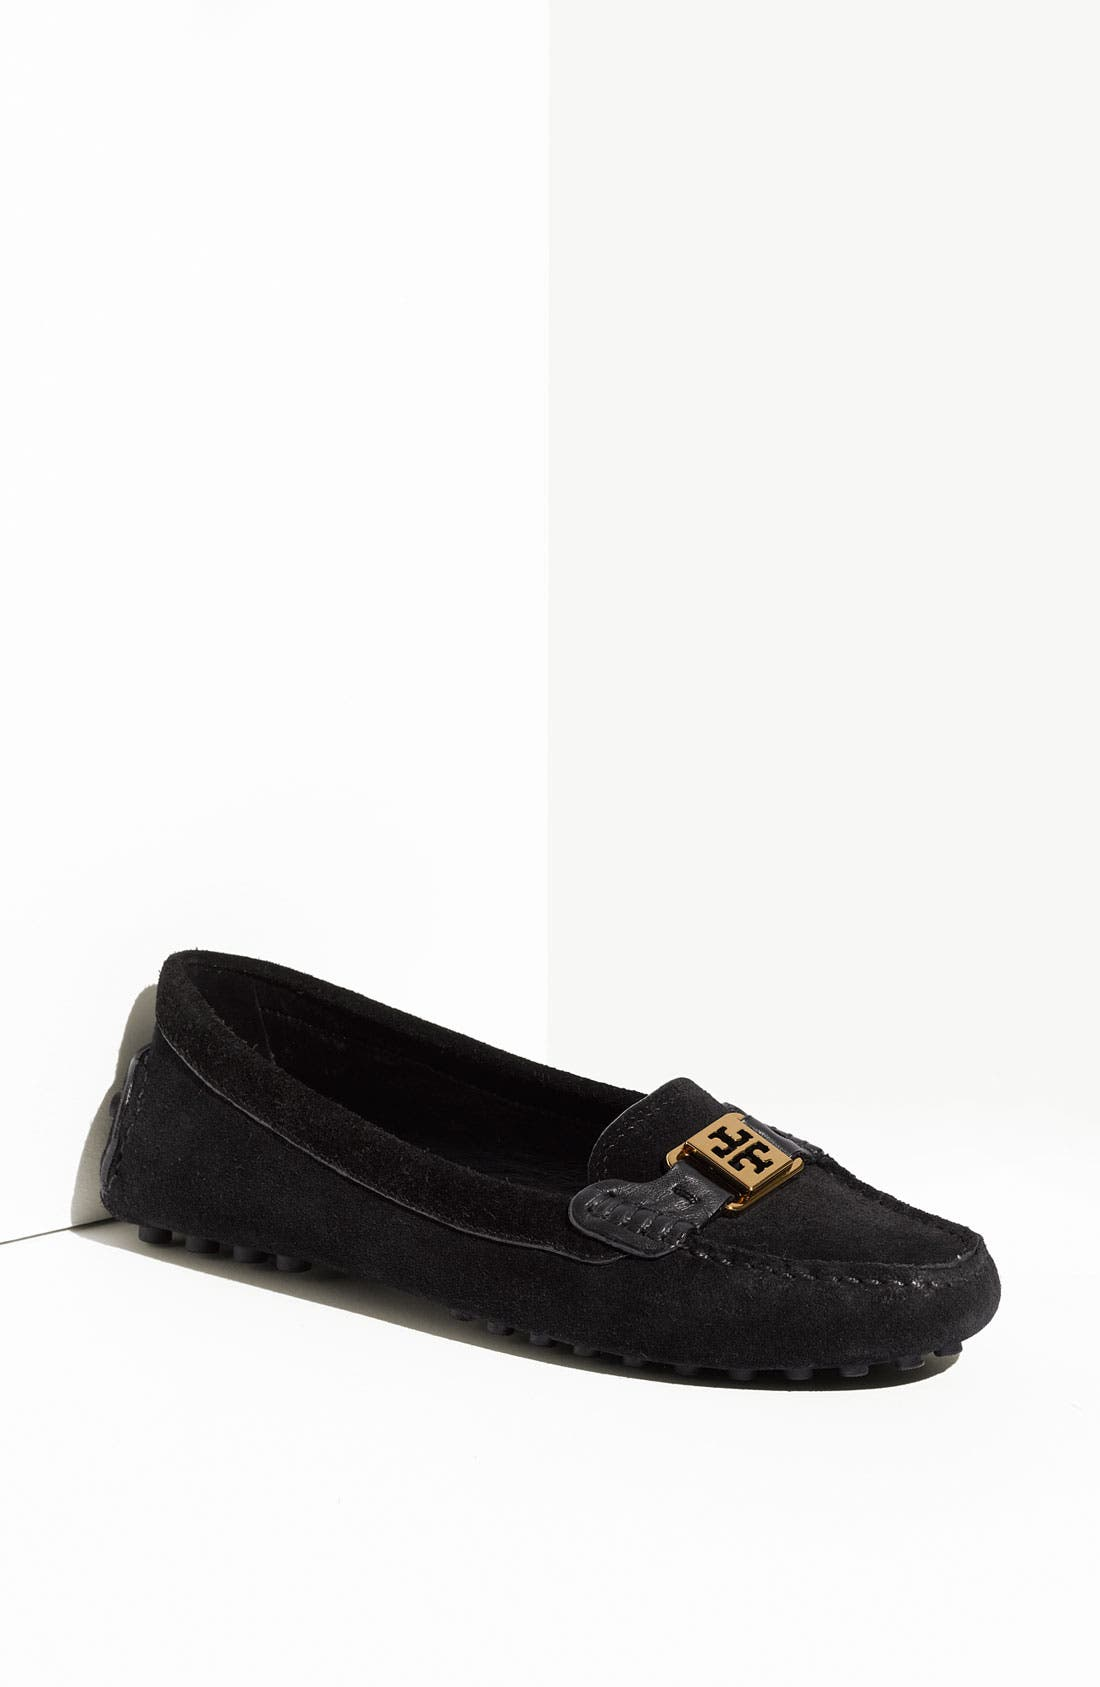 Alternate Image 1 Selected - Tory Burch 'Kendrick' Driving Moccasin